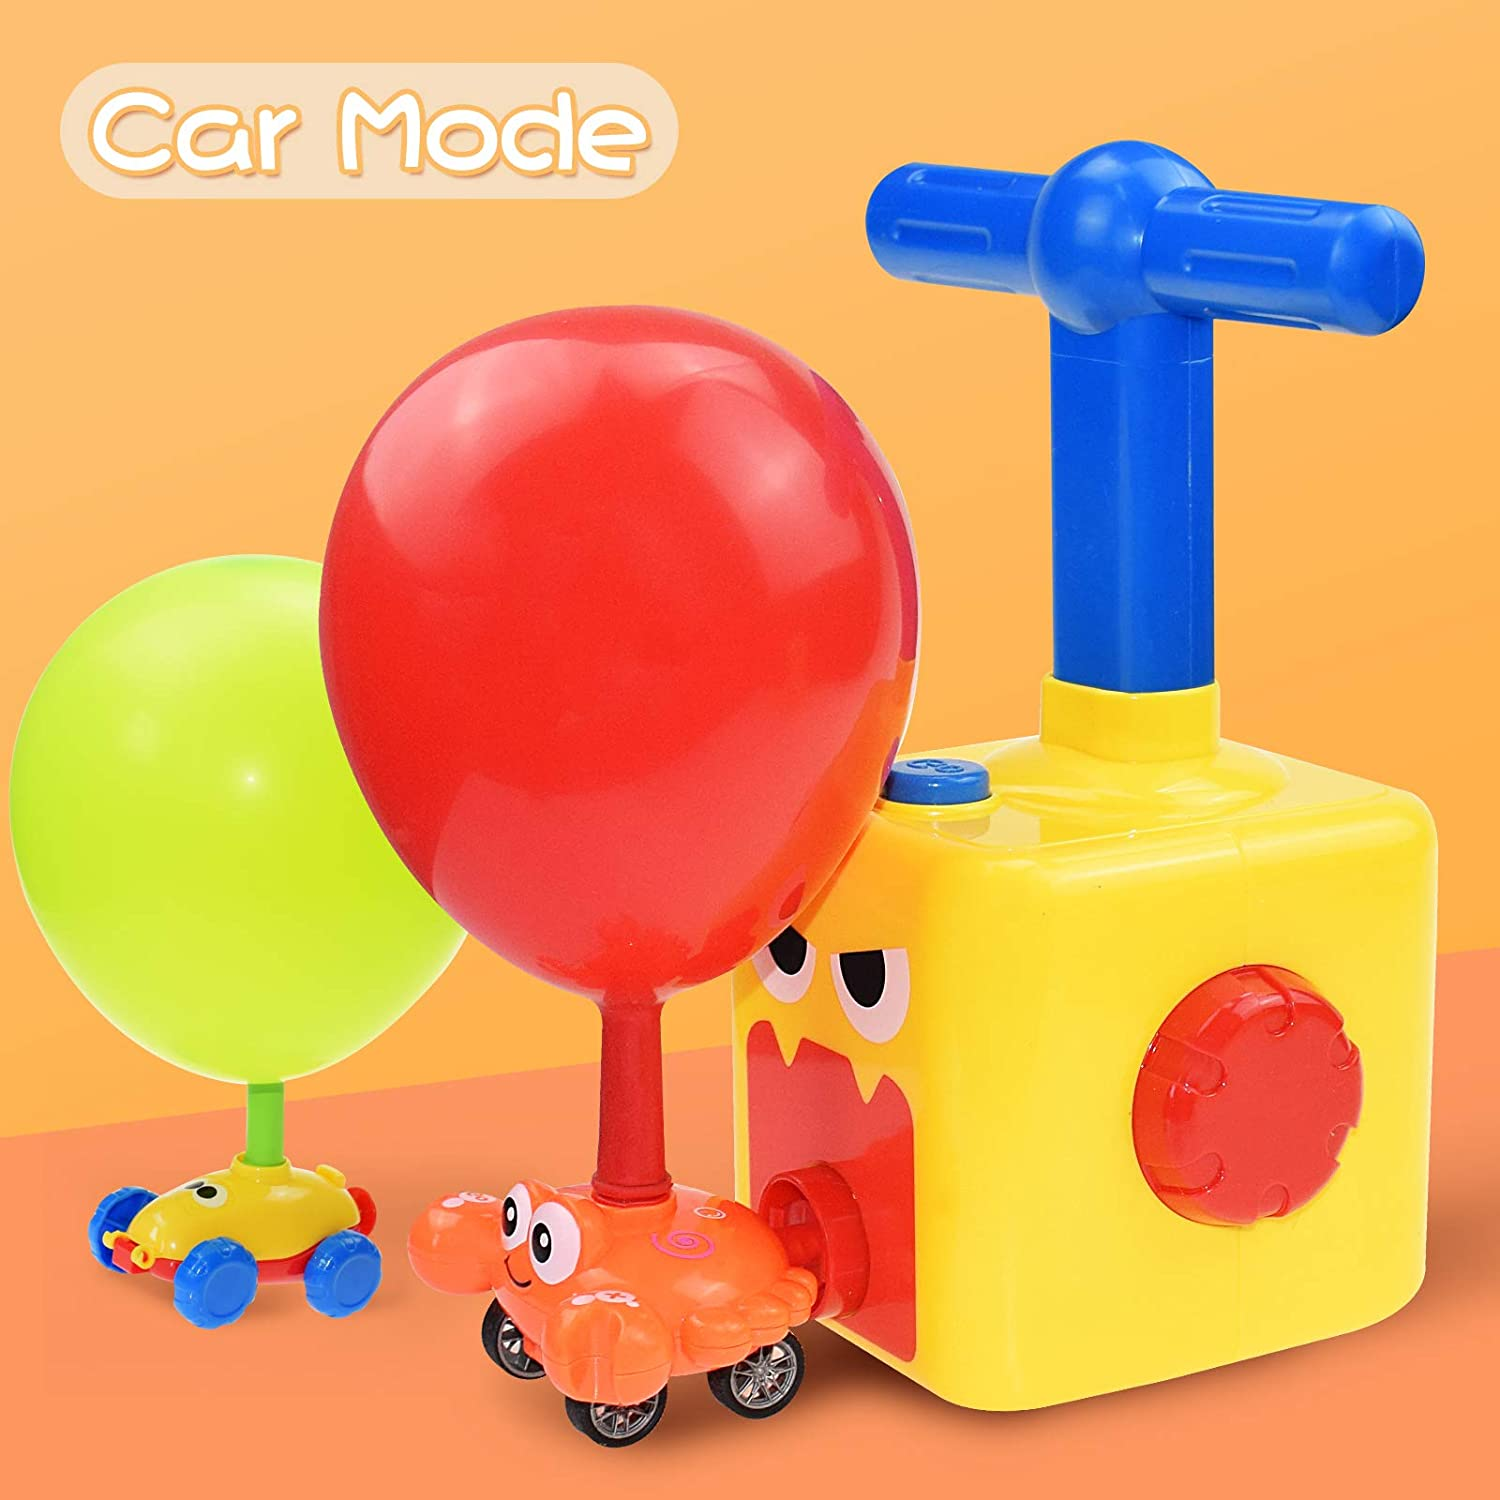 BAKAM Balloon Launcher Car Toy Set for Kids Inertial Power Balloon Racing Car Balloon Powered Racer Car STEM Toy for Toddlers Balloon Blaster Car Toy with Pump